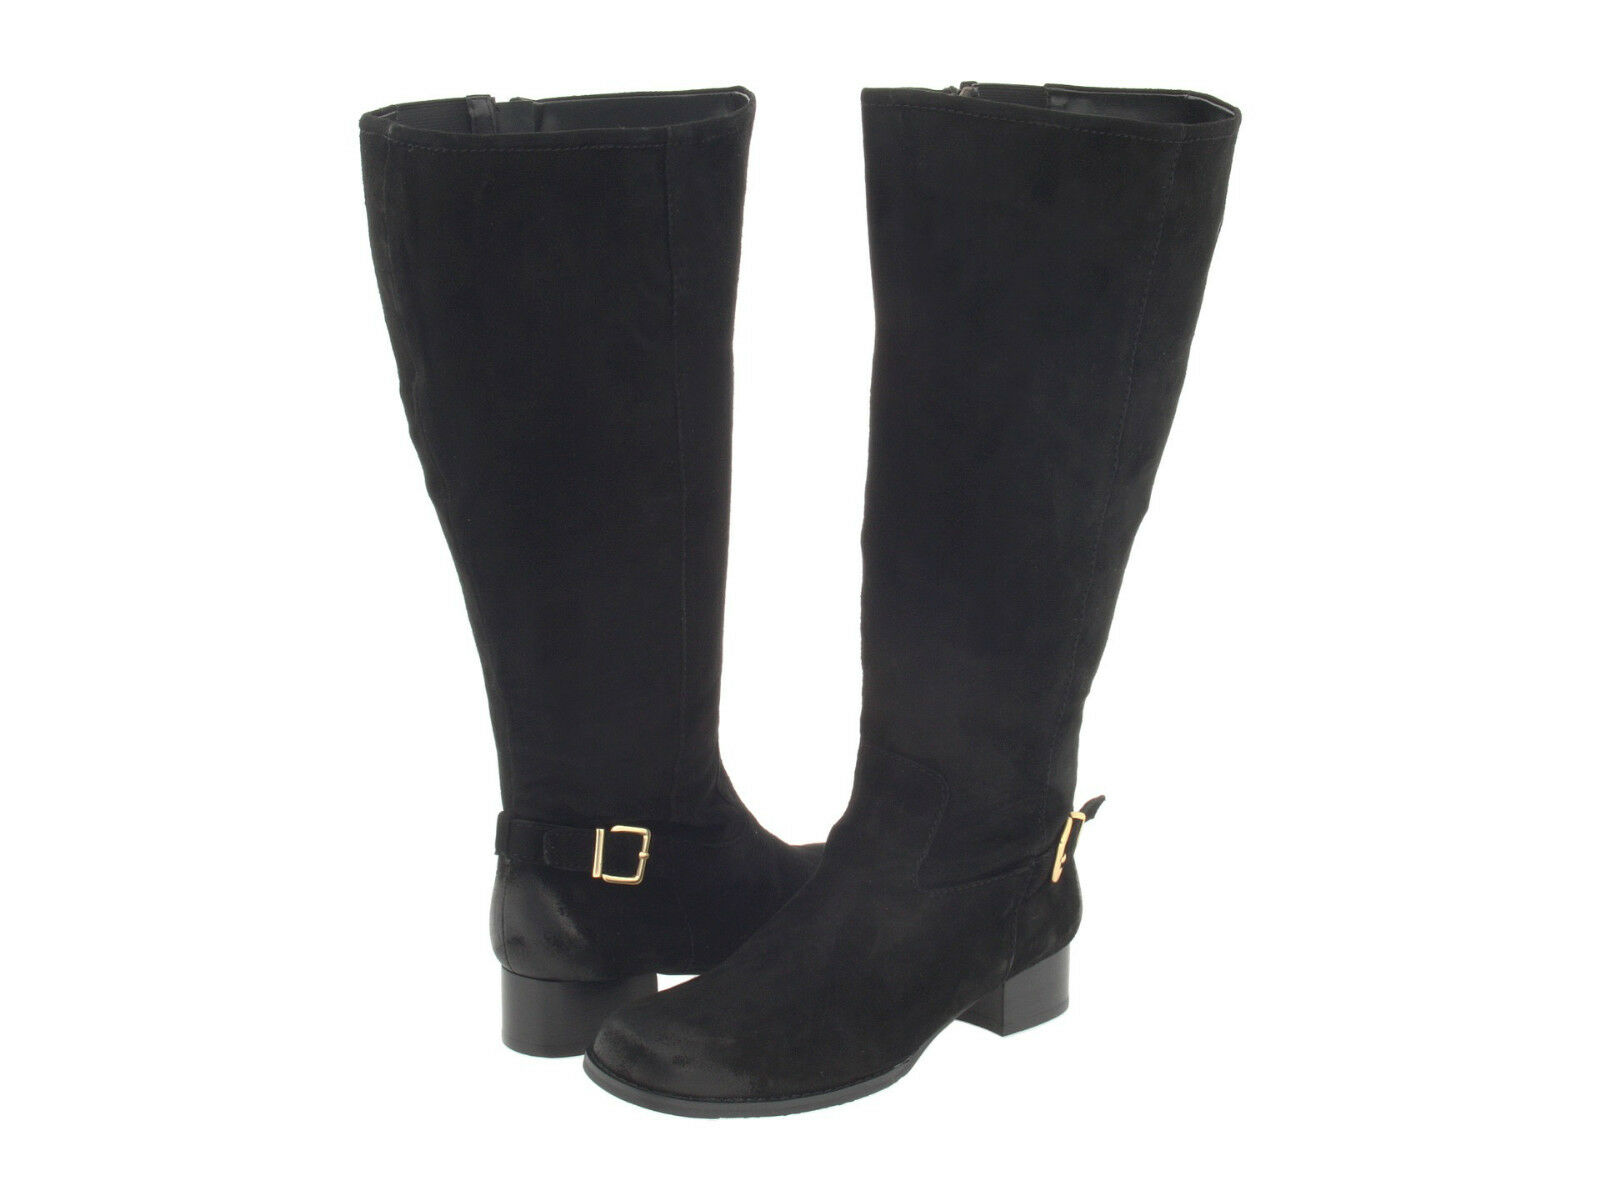 NEW ROSS ROS HOMMERSON BLACK WIDE SHAFT BOOTS WOMENS 5 KNEE HIGH